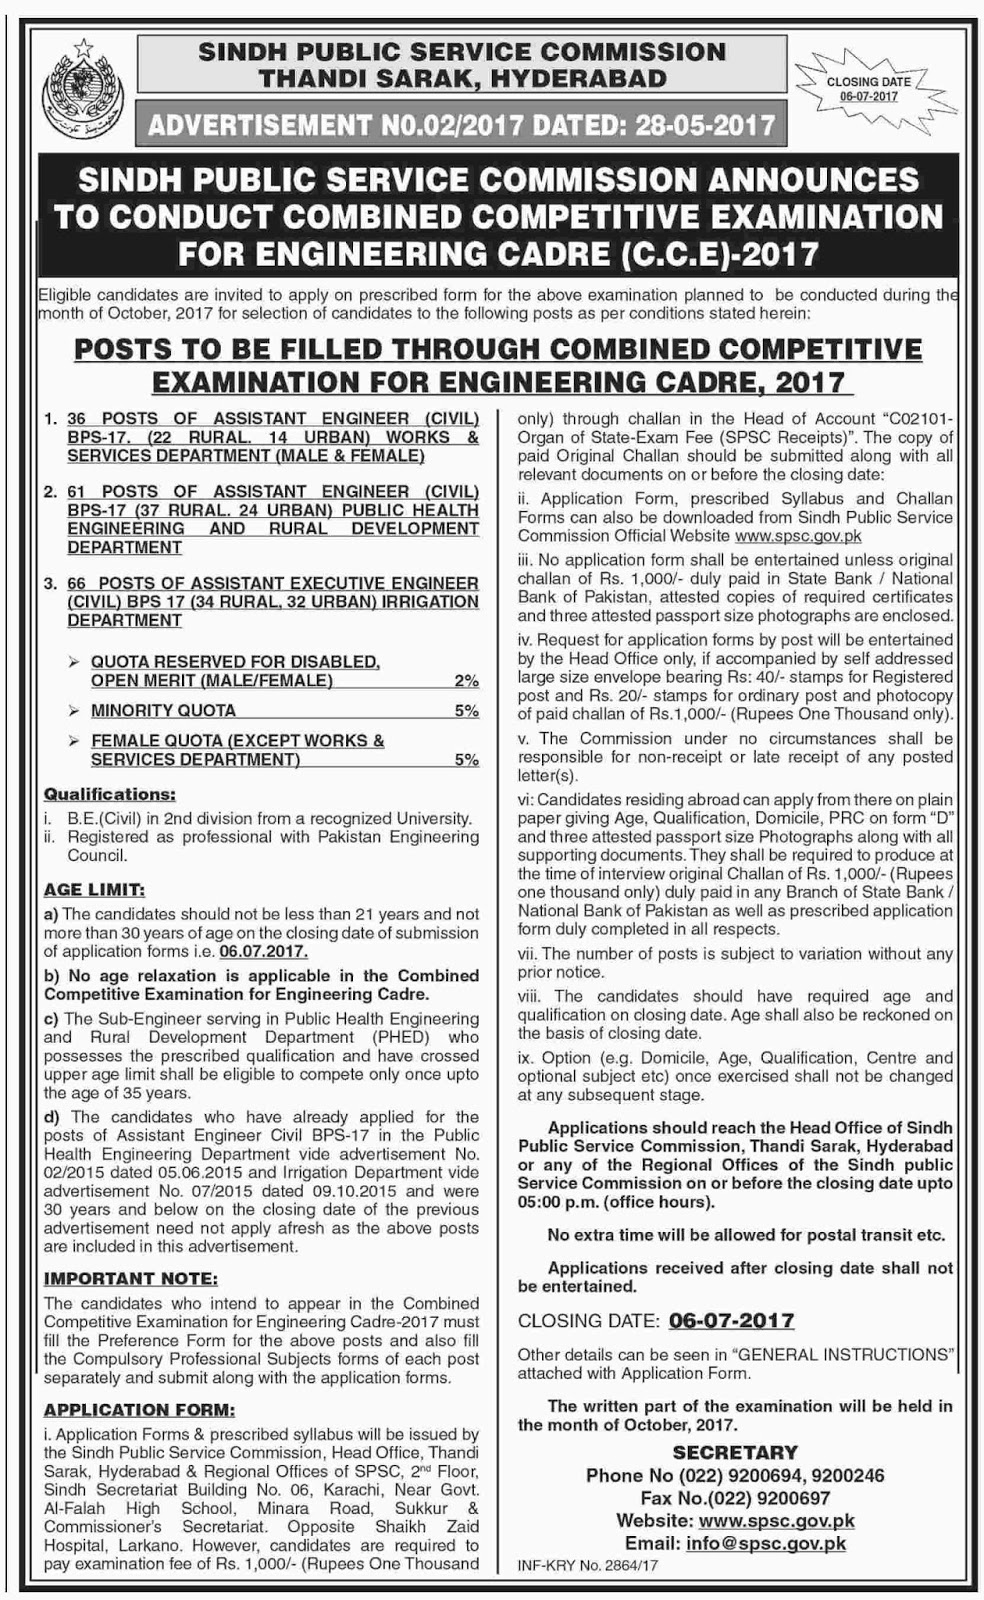 Sindh SPSC jobs in Sindh Public Service Commission 29 May 2017